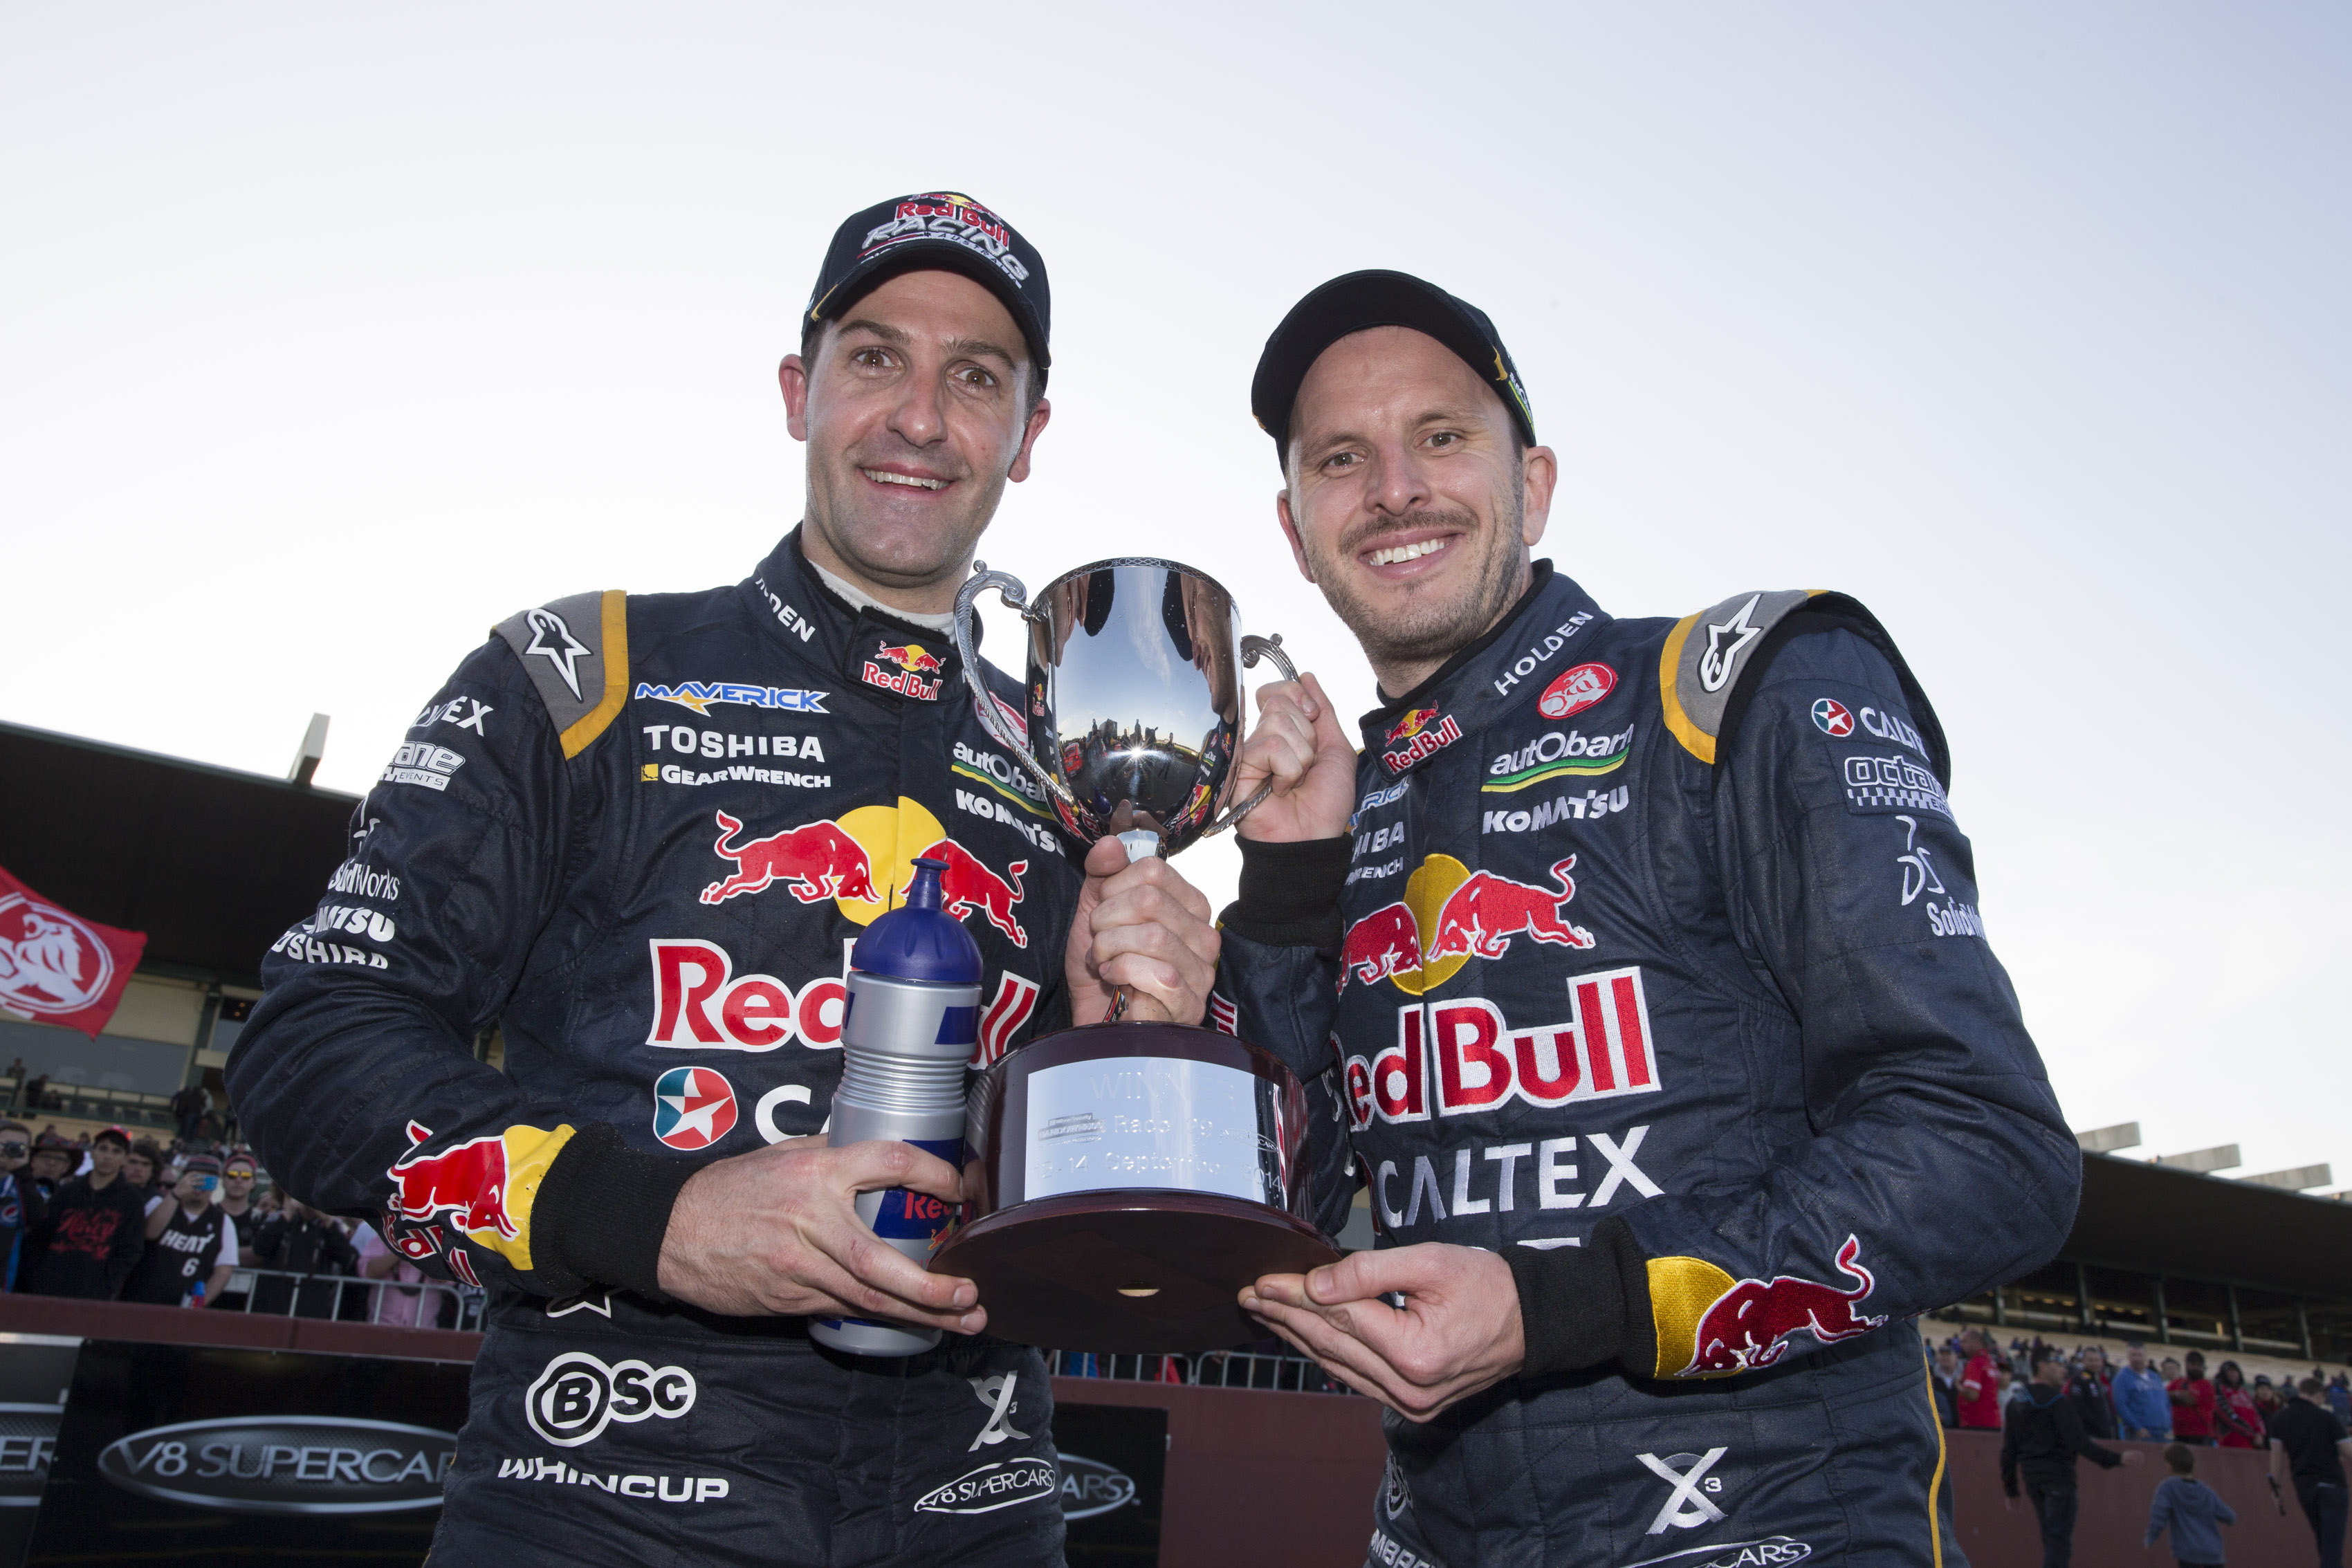 Jamie Whincup and Paul Dumbrell of Red Bull Racing Australia winners of the Wilson Security Sandown 500, Event 10 of the 2014 Australian V8 Supercar Championship Series at the Sandown International Motor Race, Melbourne, Victoria, September 14, 2014.